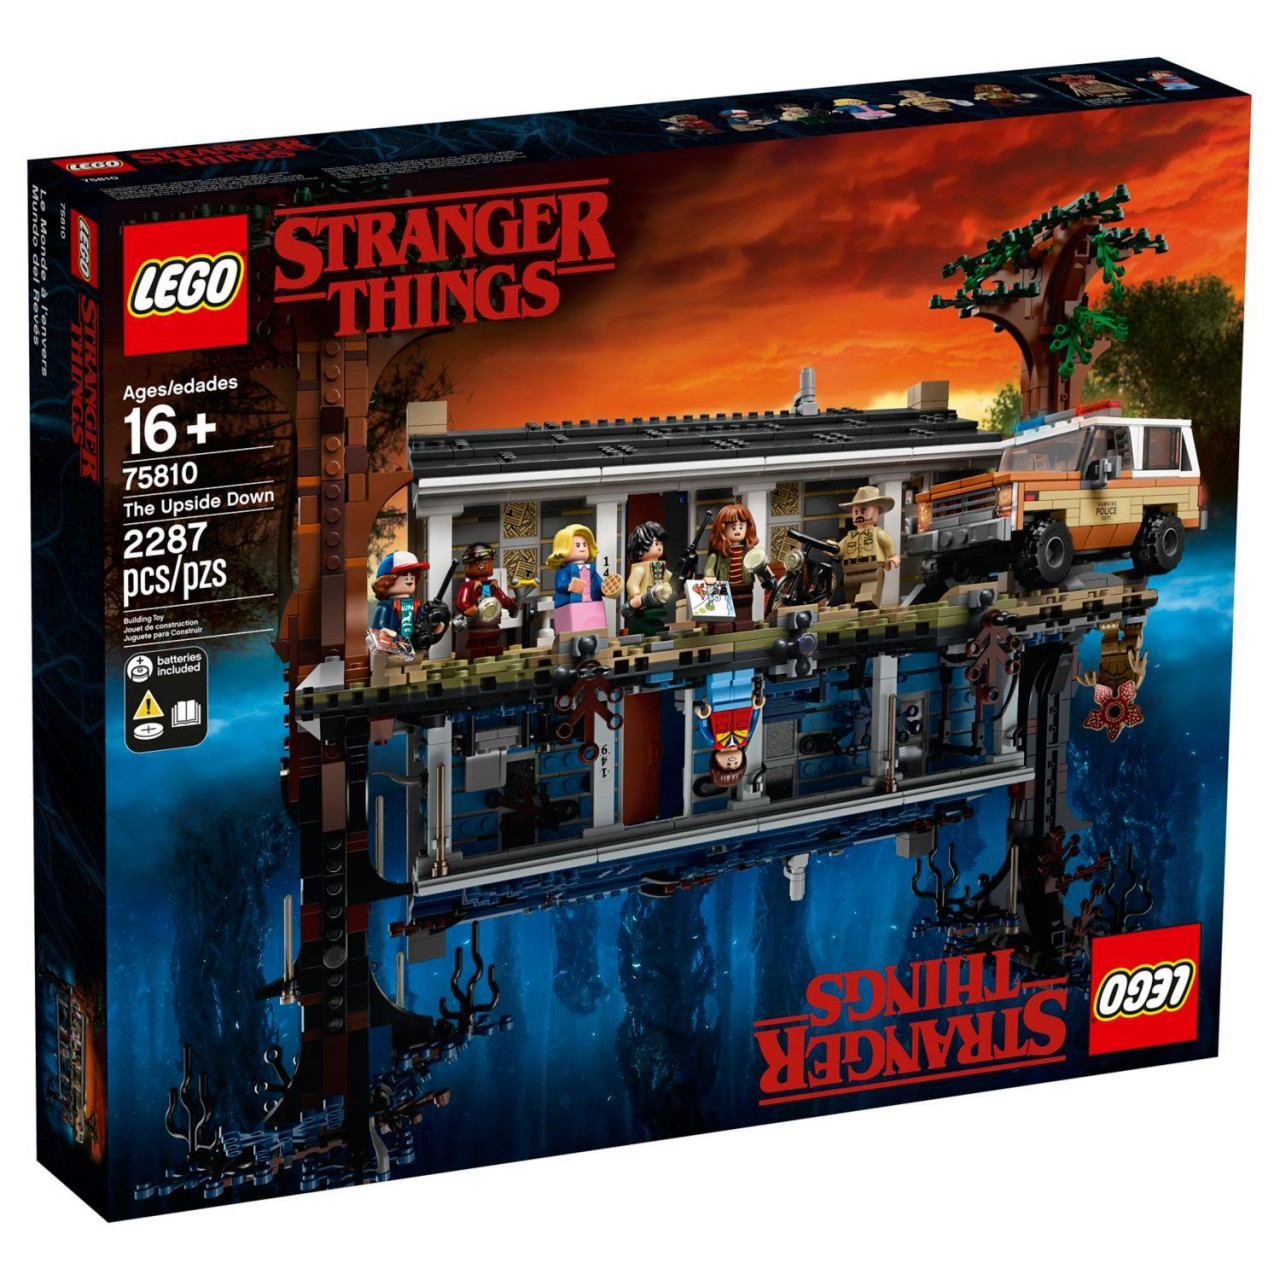 LEGO STRANGER THINGS 75810 Die andere Seite